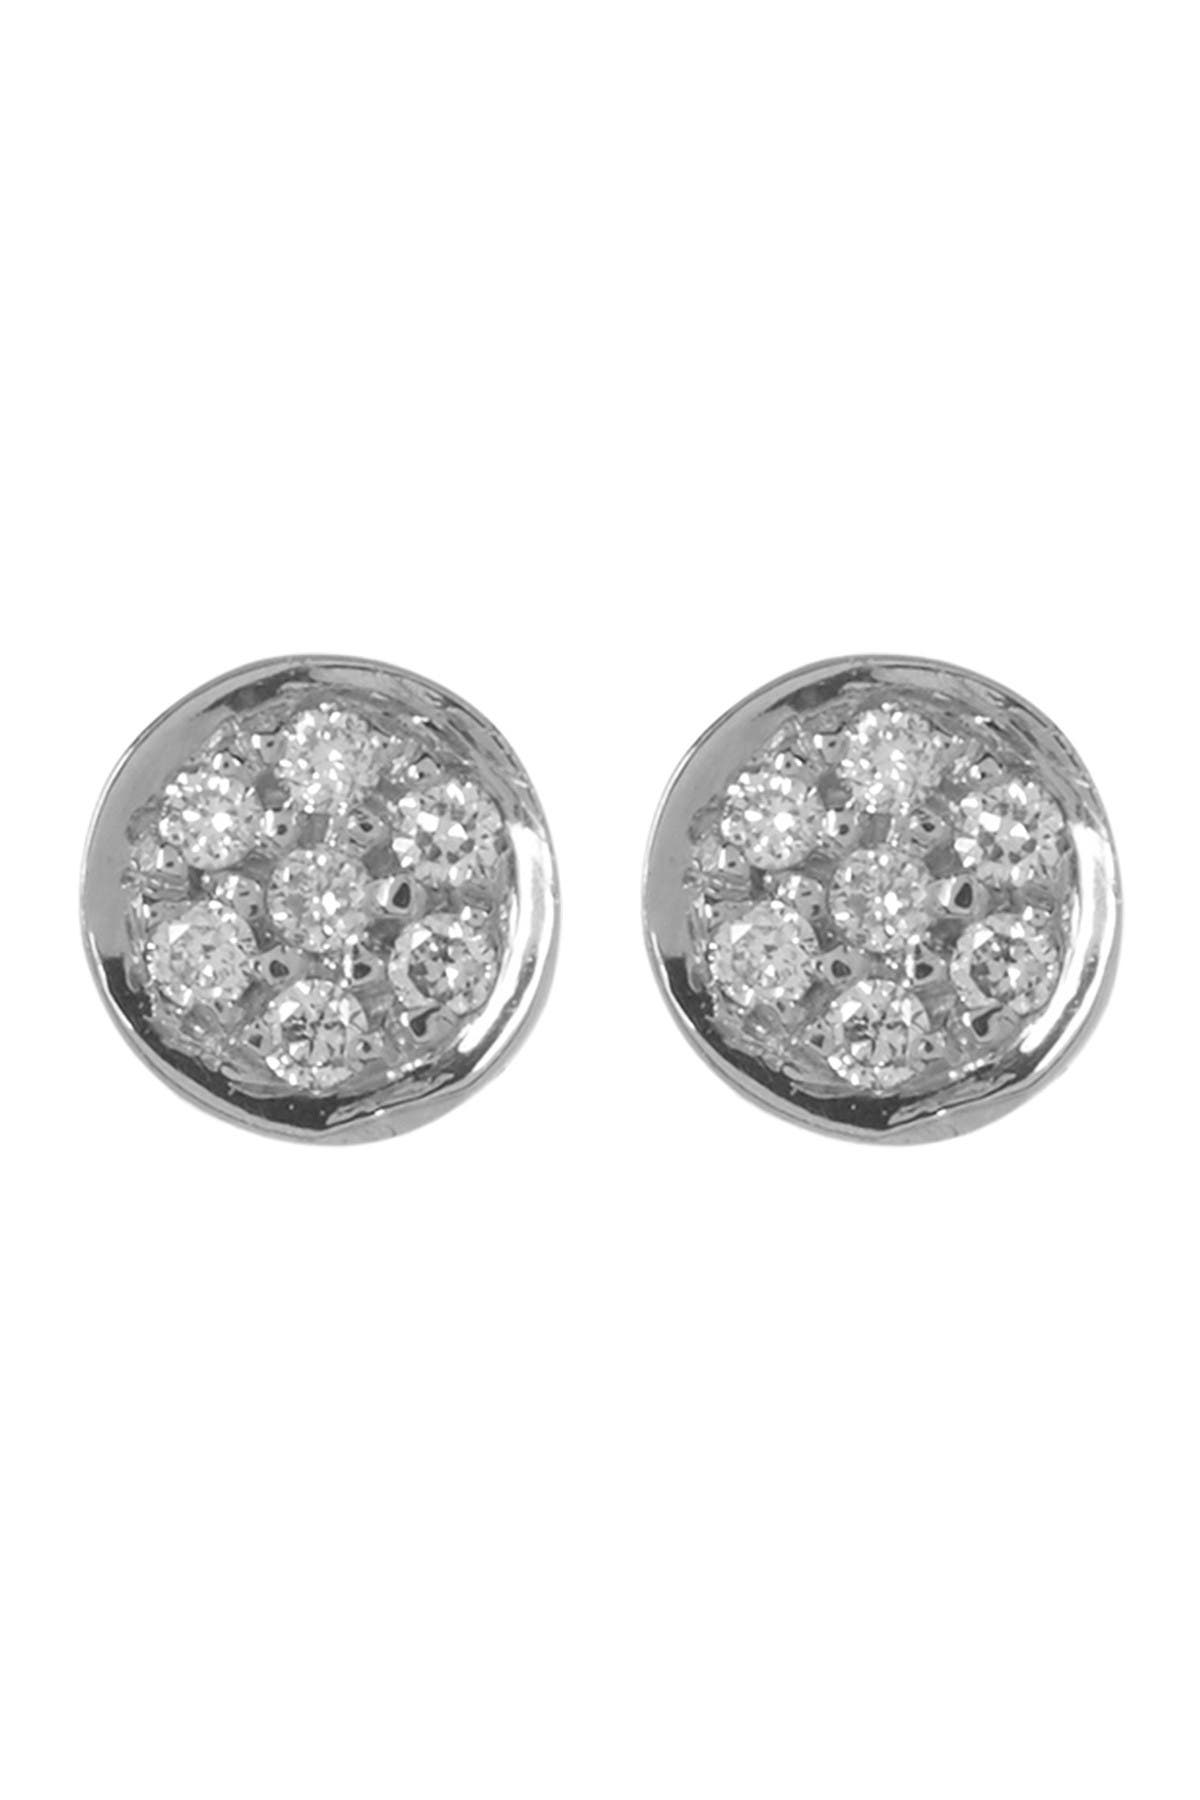 Image of Bony Levy 18K White Gold Round Pave Diamond Stud Earrings - 0.03 ctw